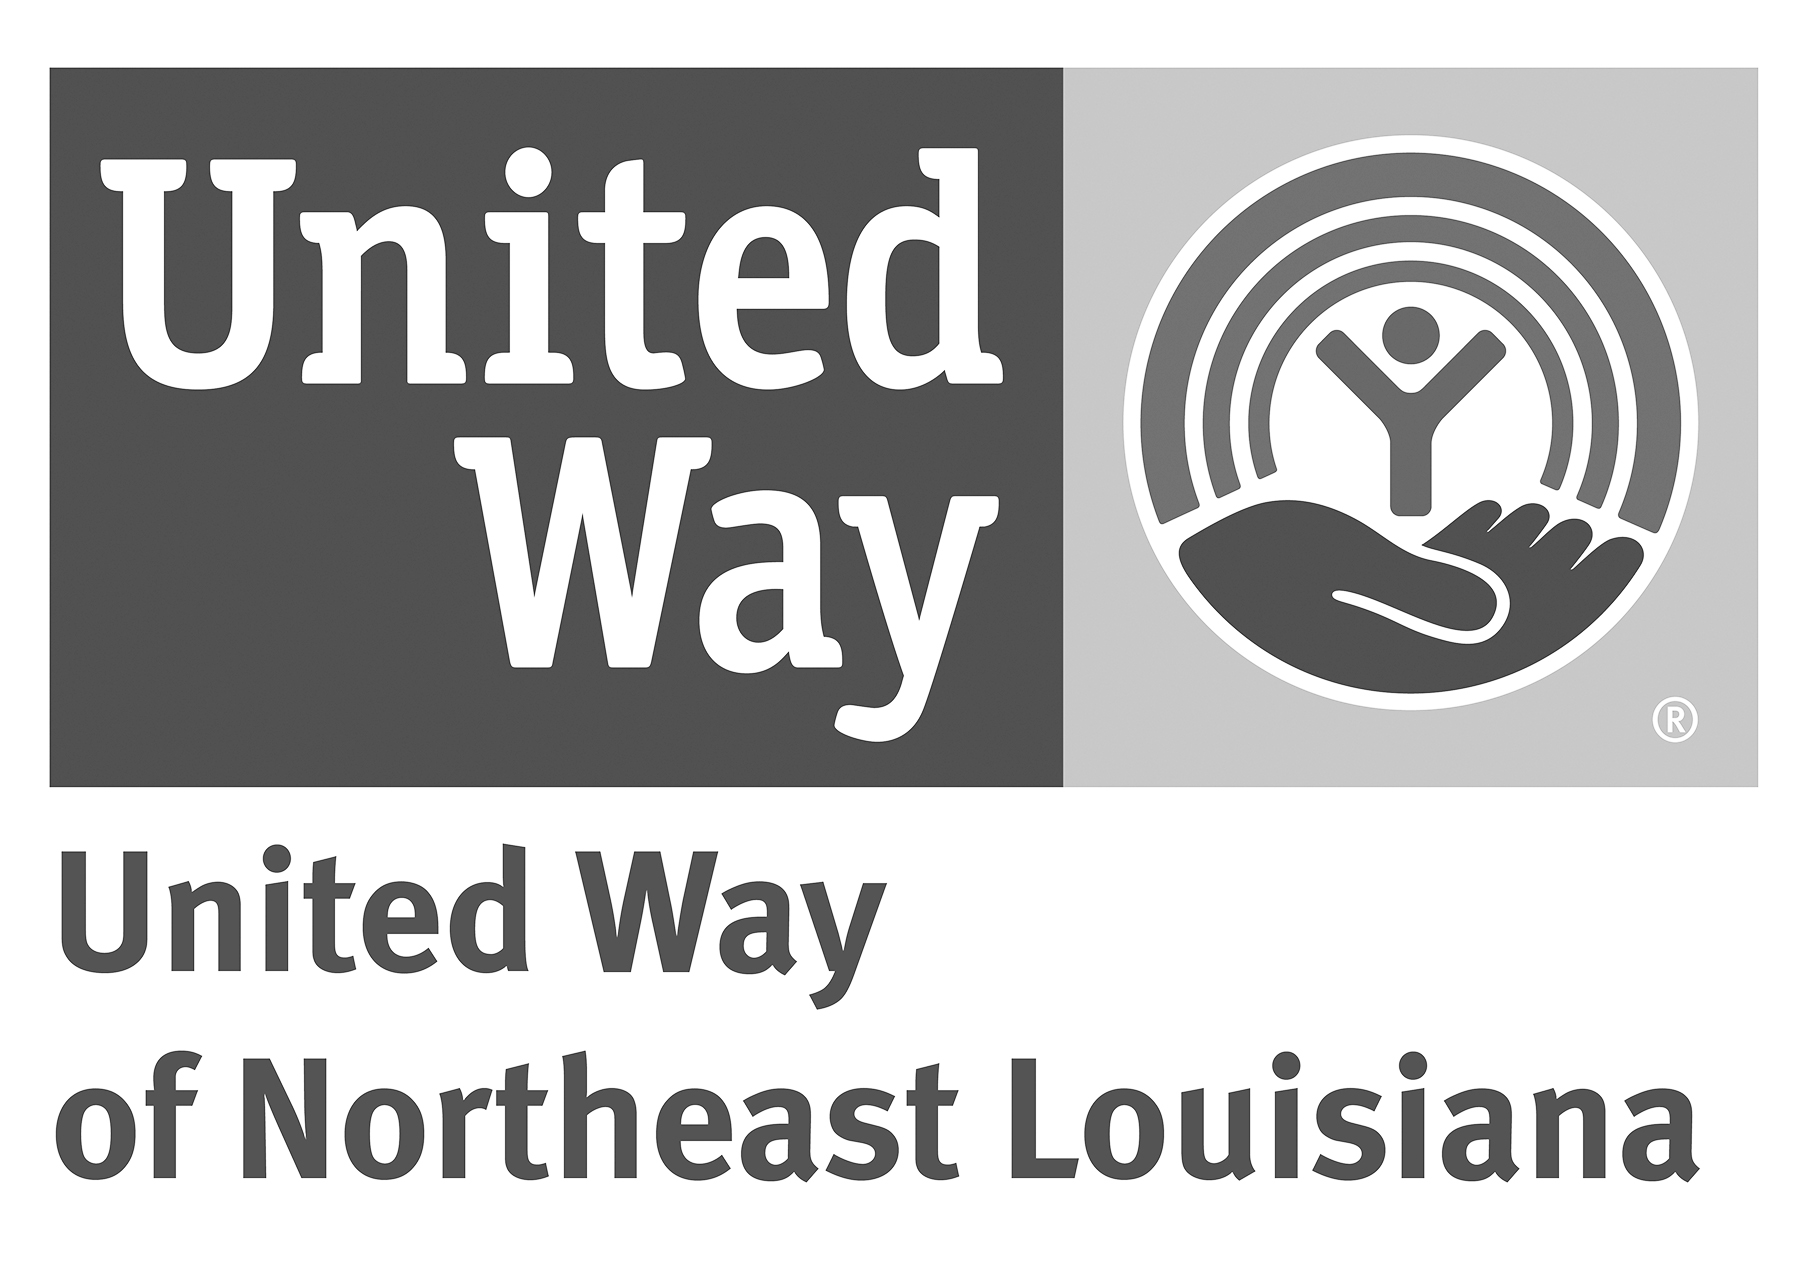 United Way B&W.jpg